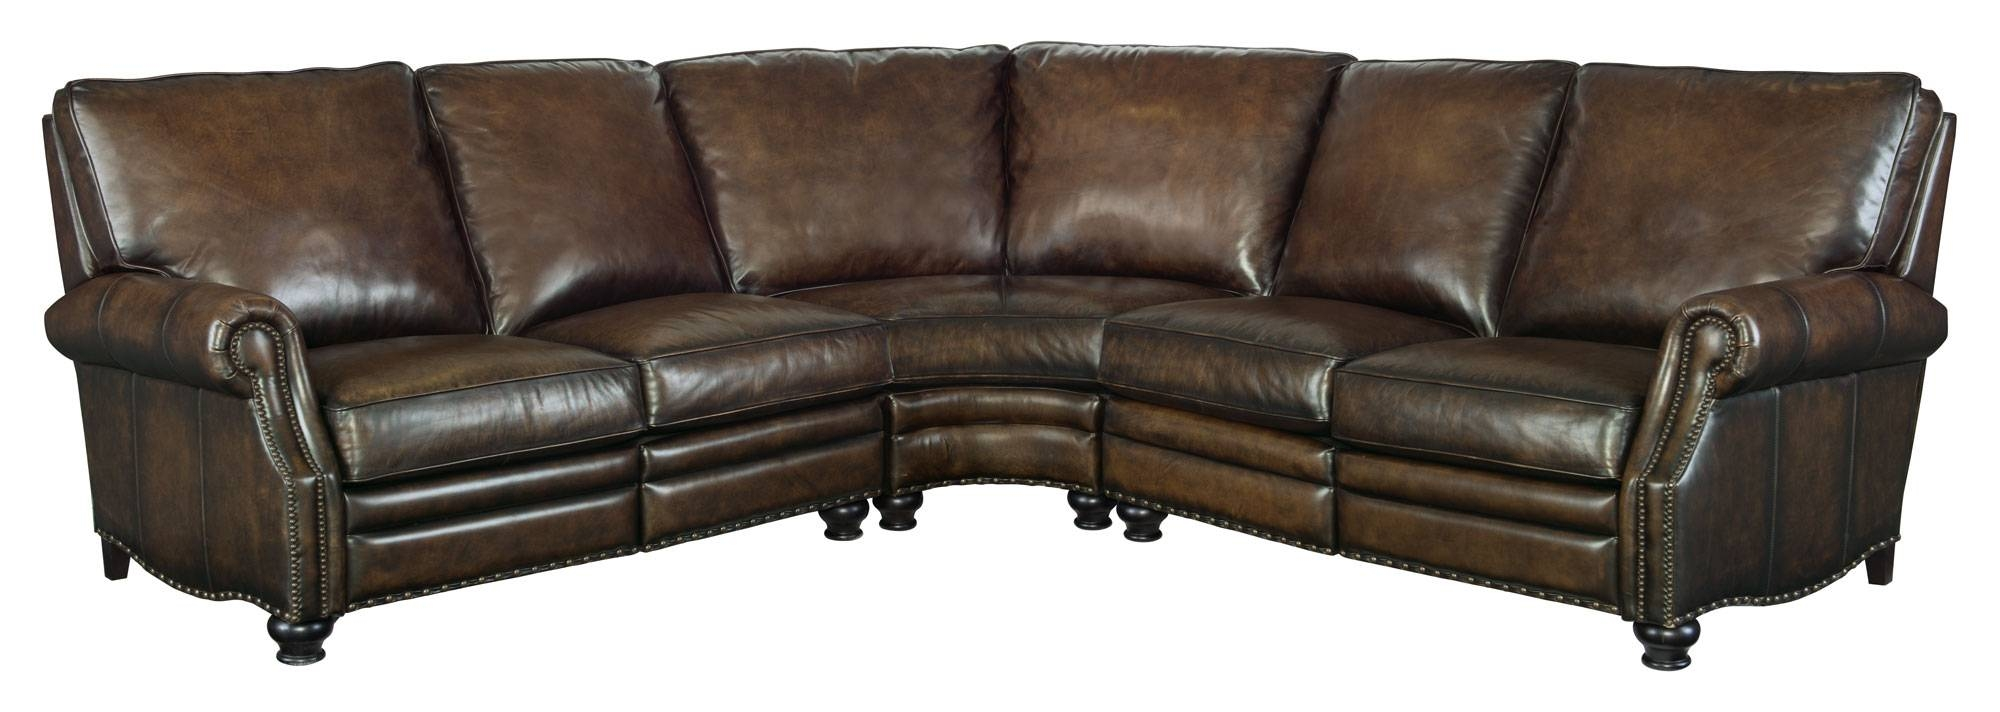 Power Motion Sectional Sofa | Bernhardt regarding Leather Motion Sectional Sofa (Image 19 of 25)